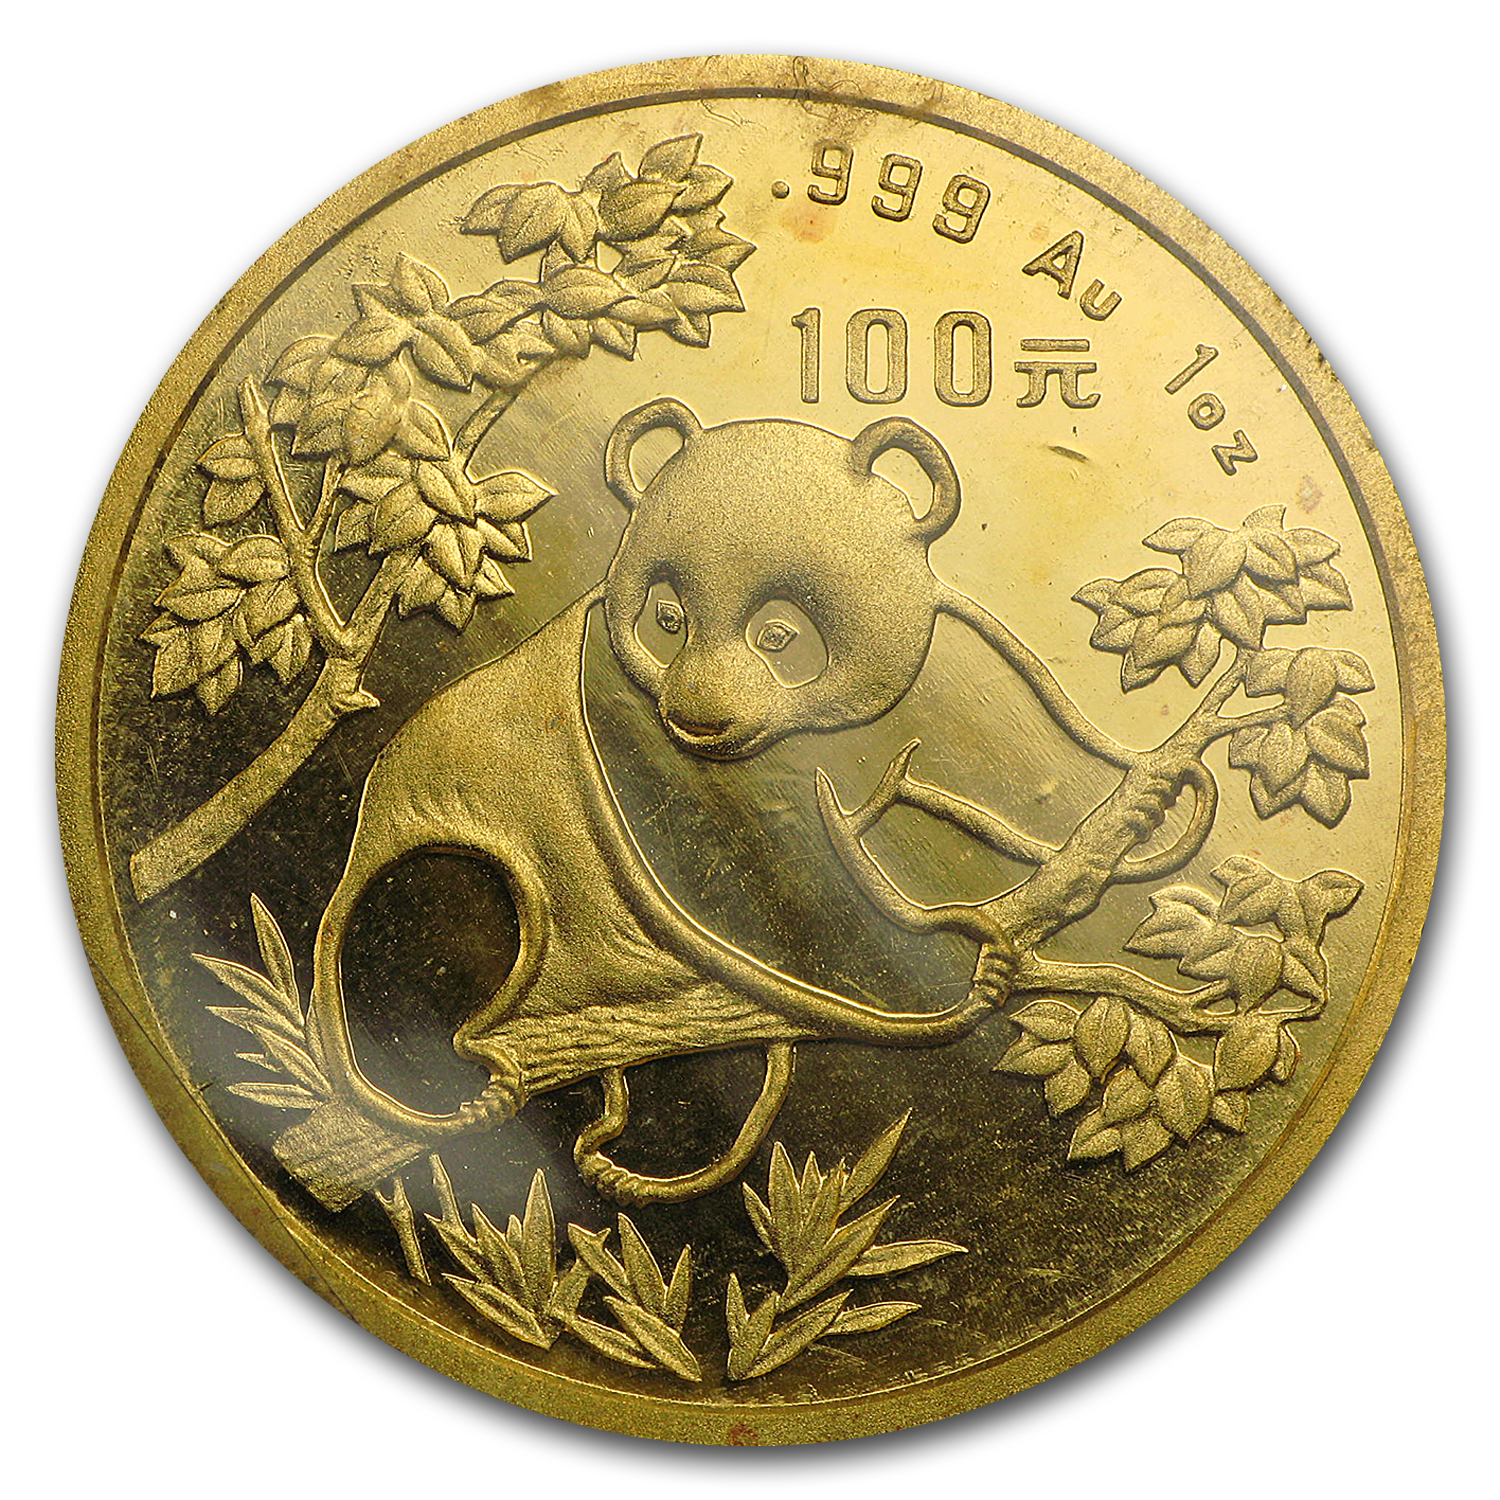 1992 1 oz Gold Chinese Panda - Large Date (Sealed)